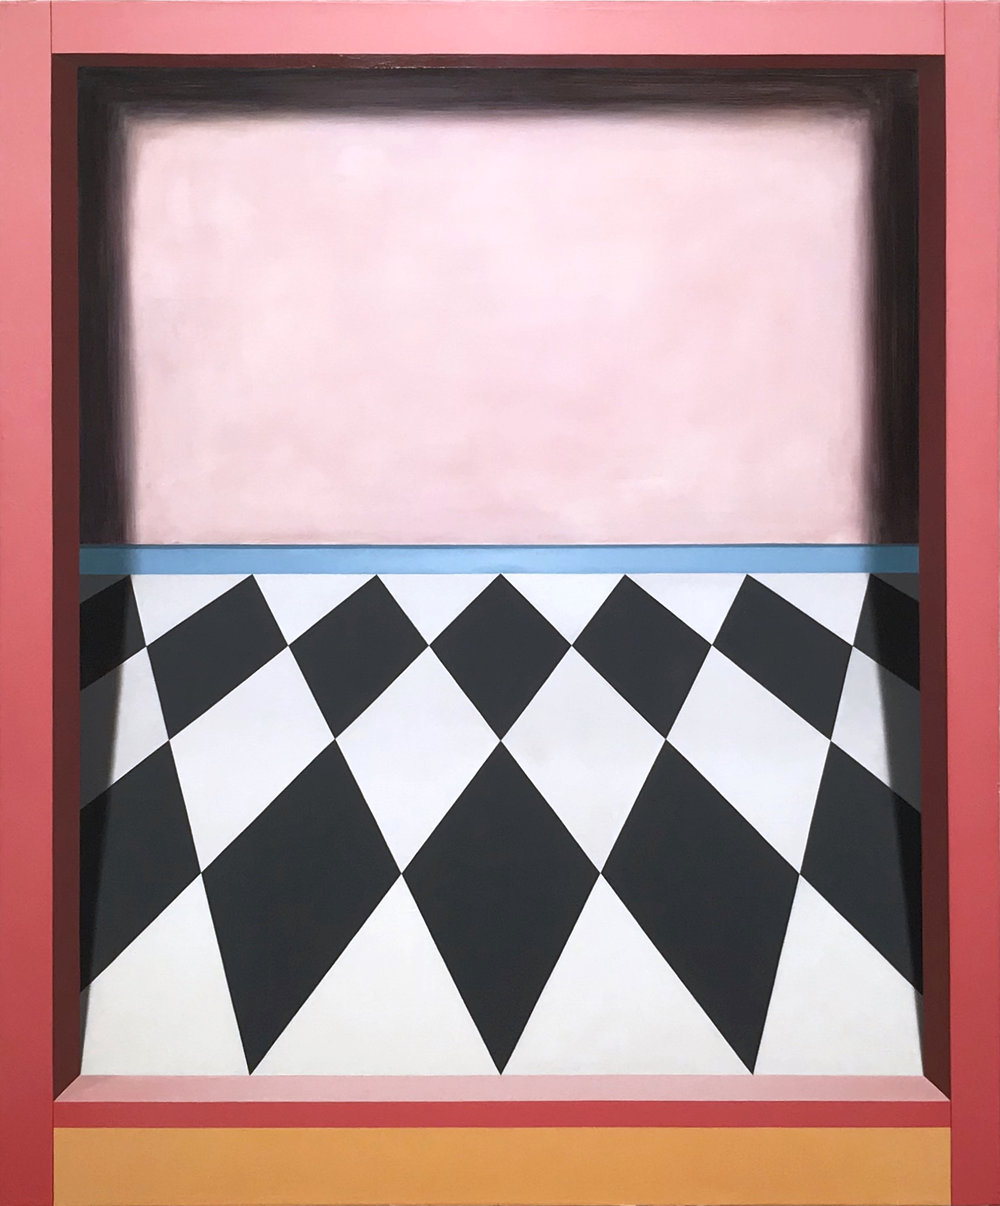 Threshold (Tilt)   2018  Oil on canvas  46 x 38 in